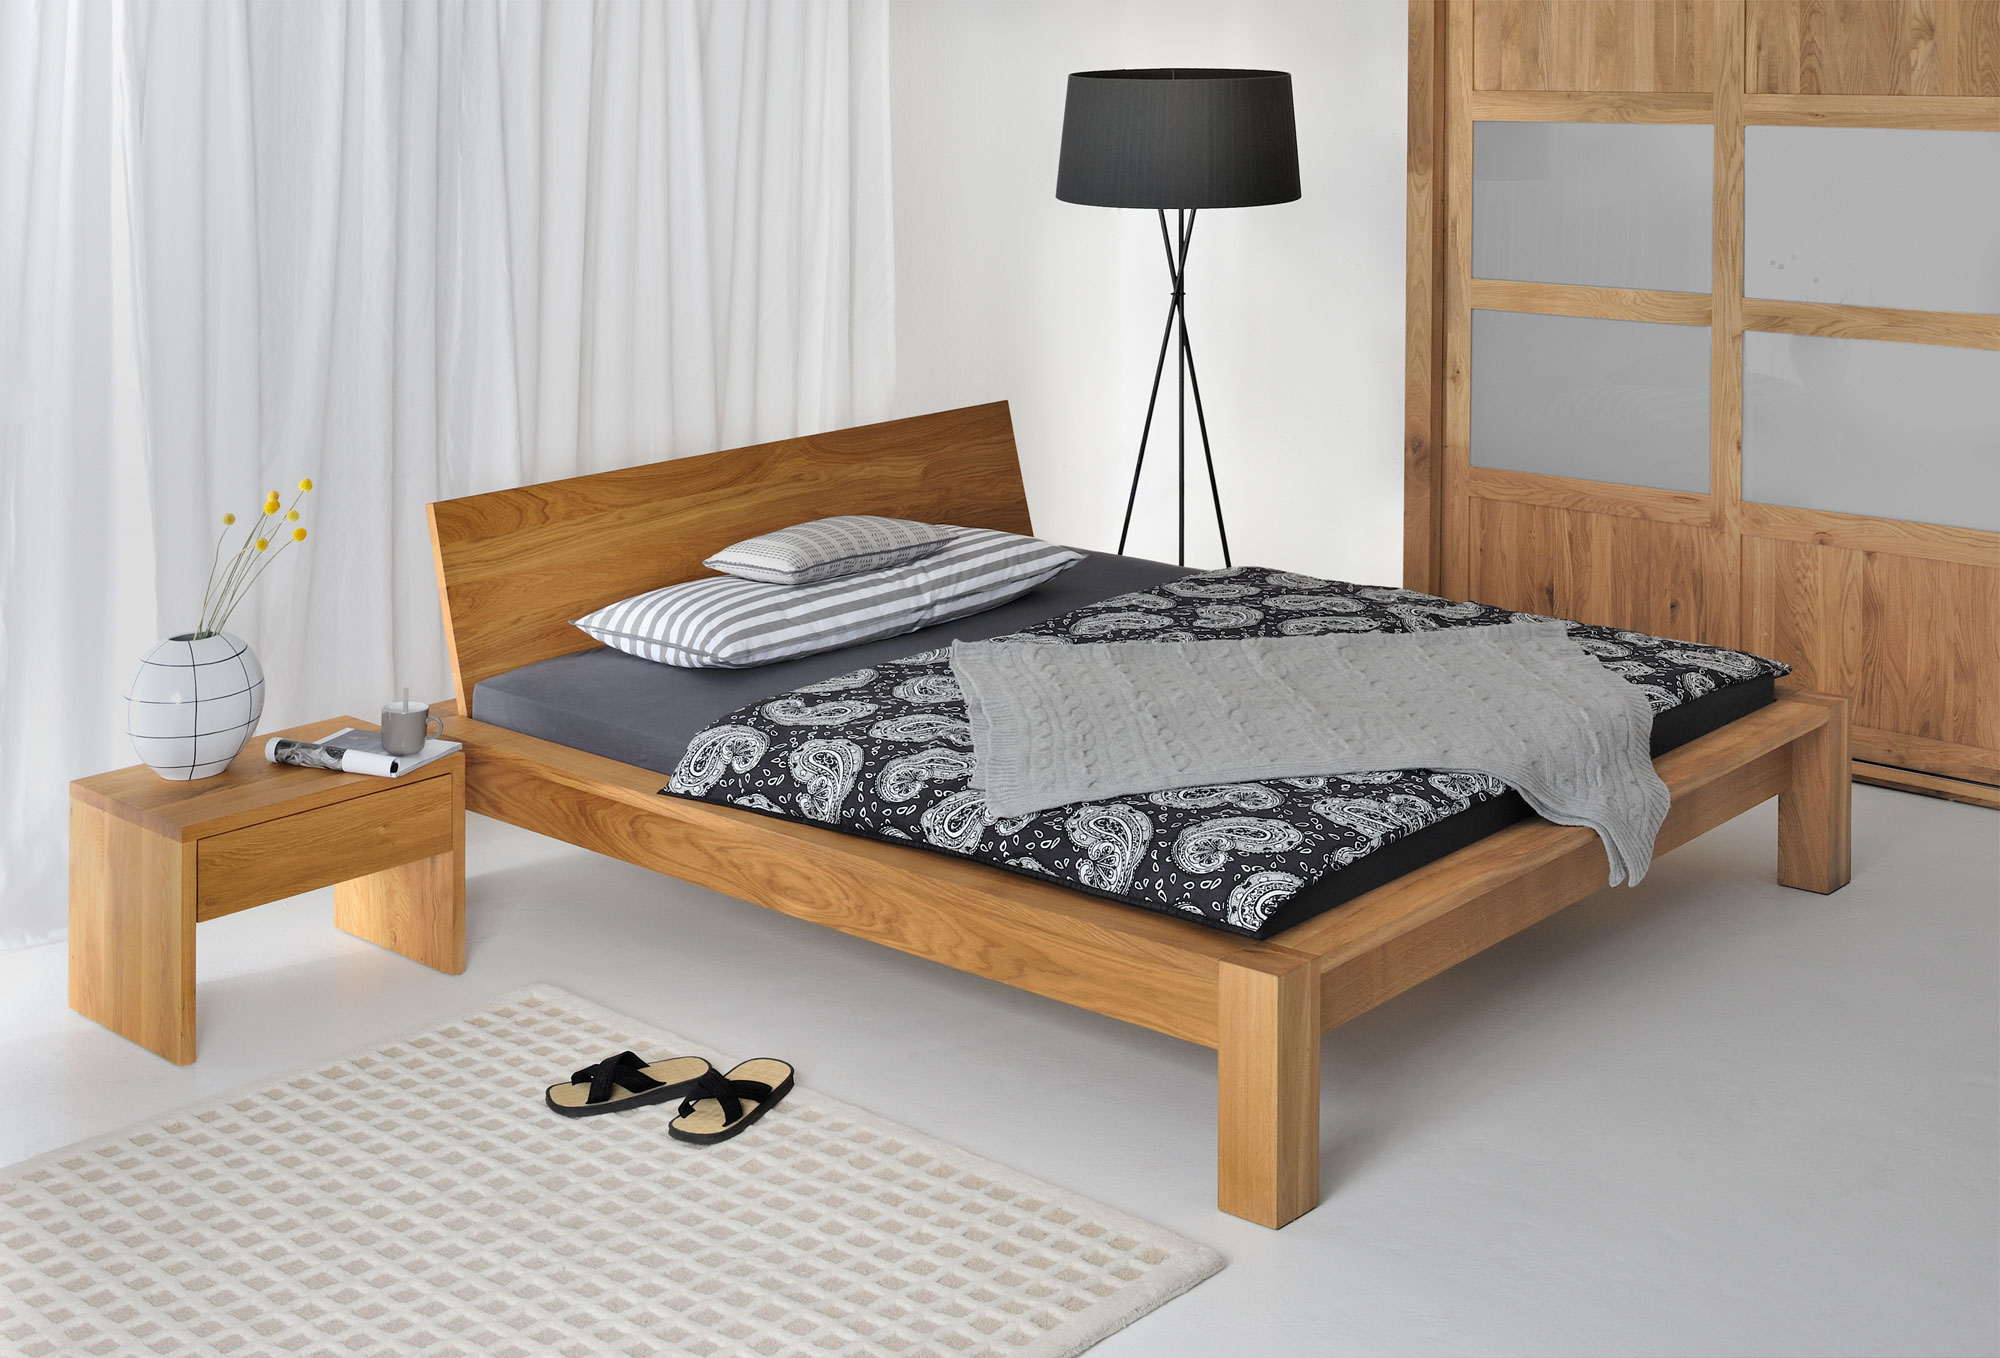 Rustic Oak Bed TAURUS 3159 custom made in solid wood by vitamin design